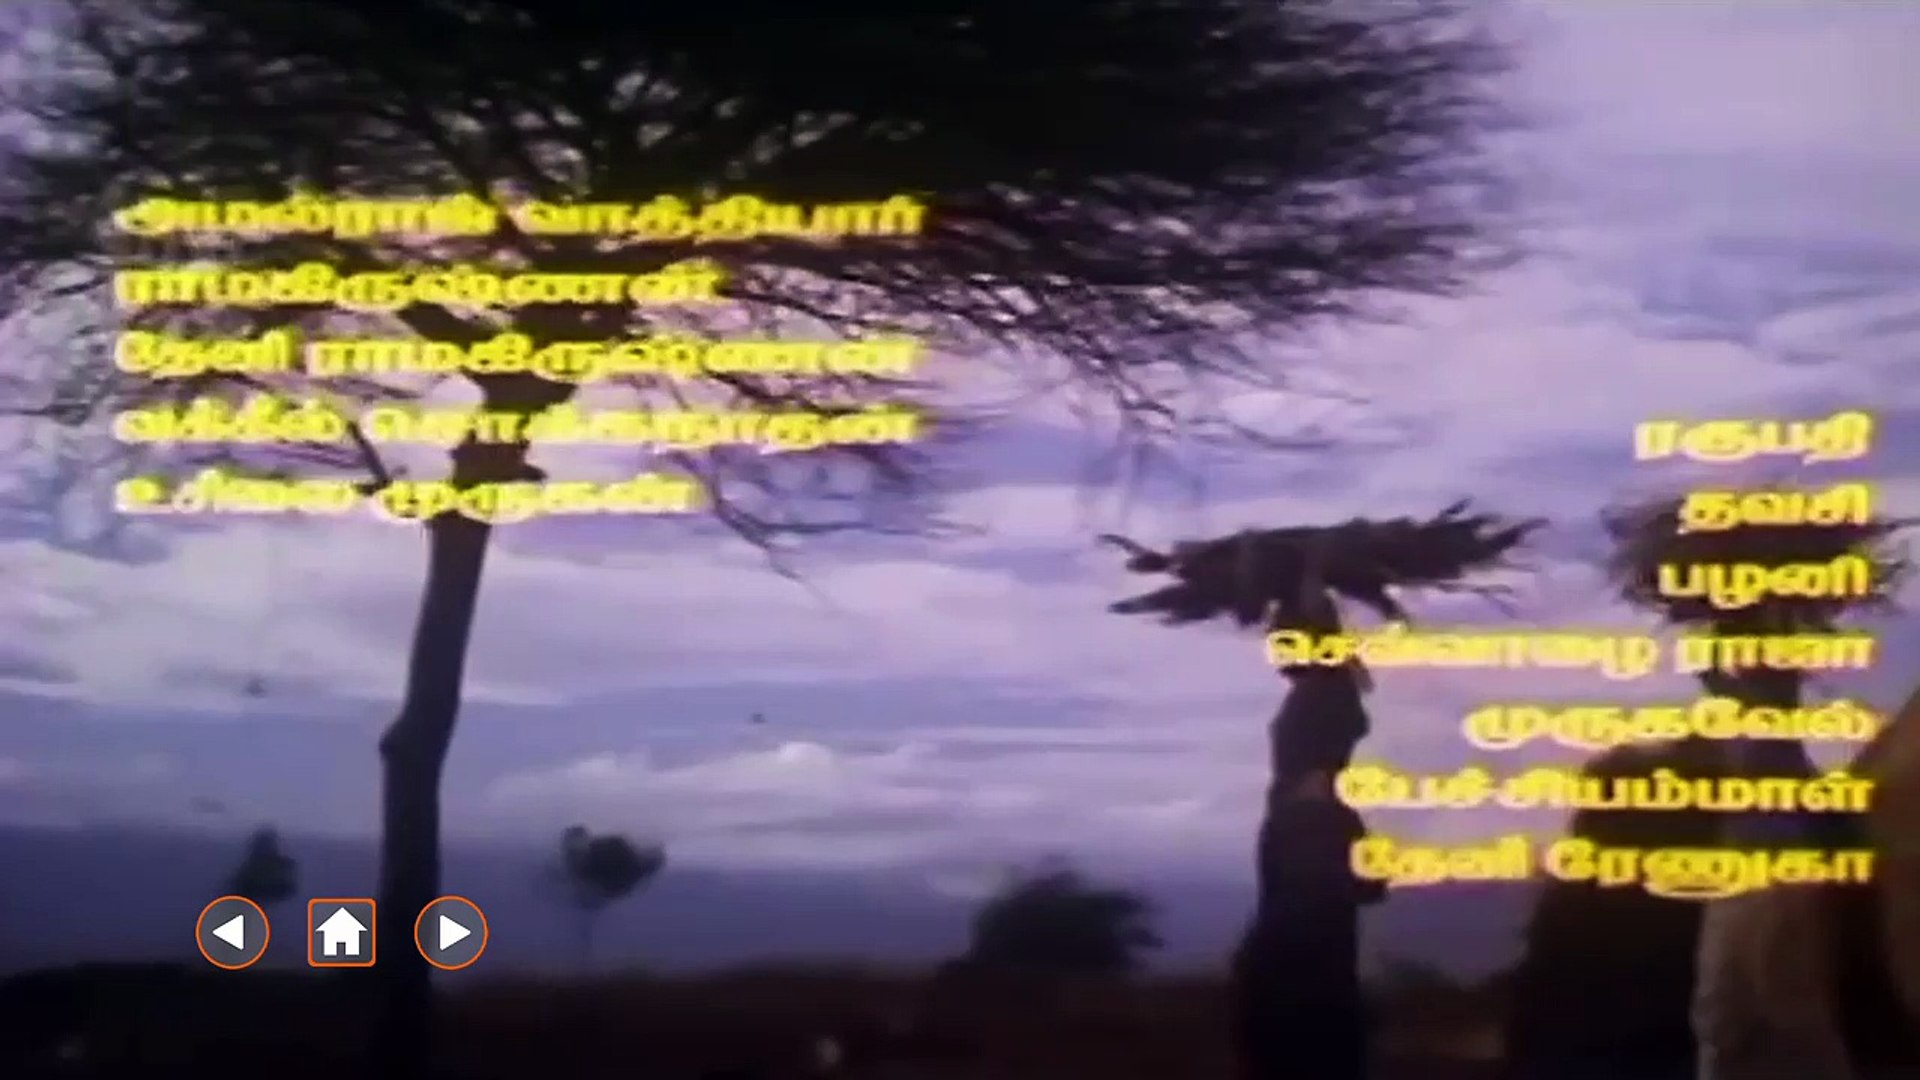 Karuthamma Tamil Songs Jukebox - A. R. Rahman Hits - Tamil Movie Songs Collection